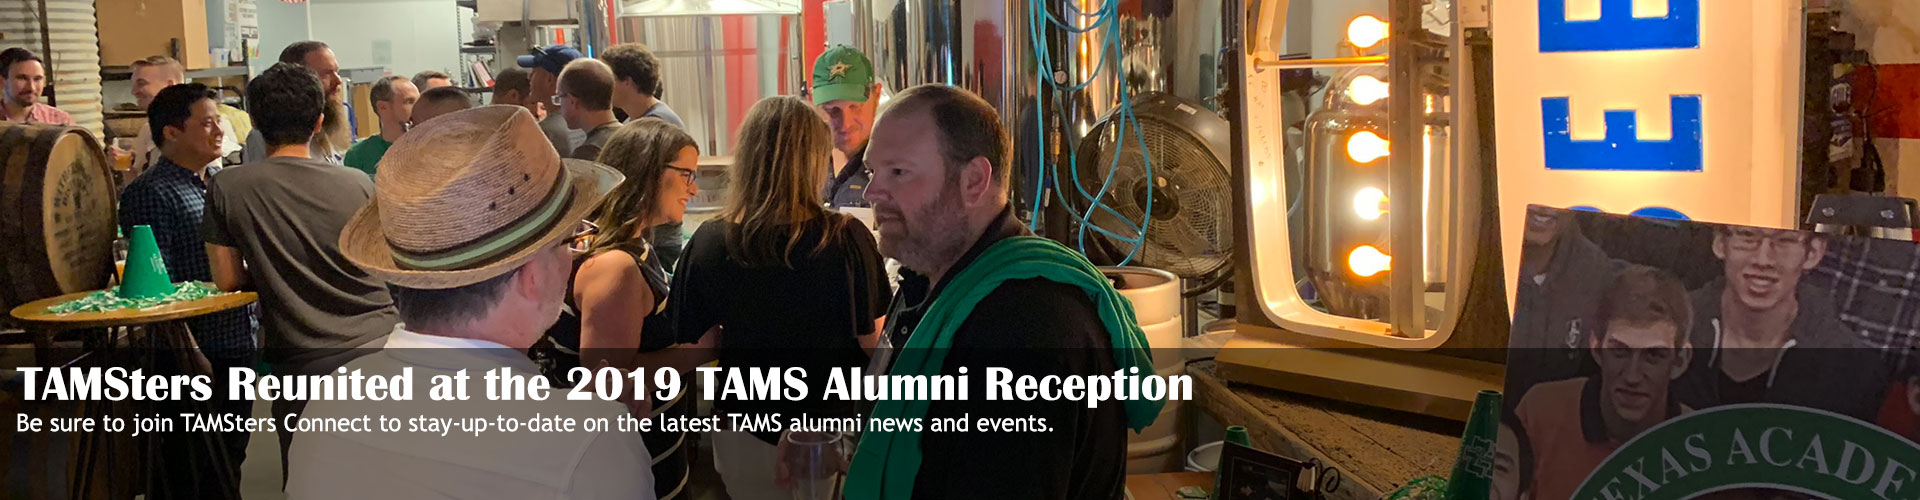 2019 TAMS Alumni Reception